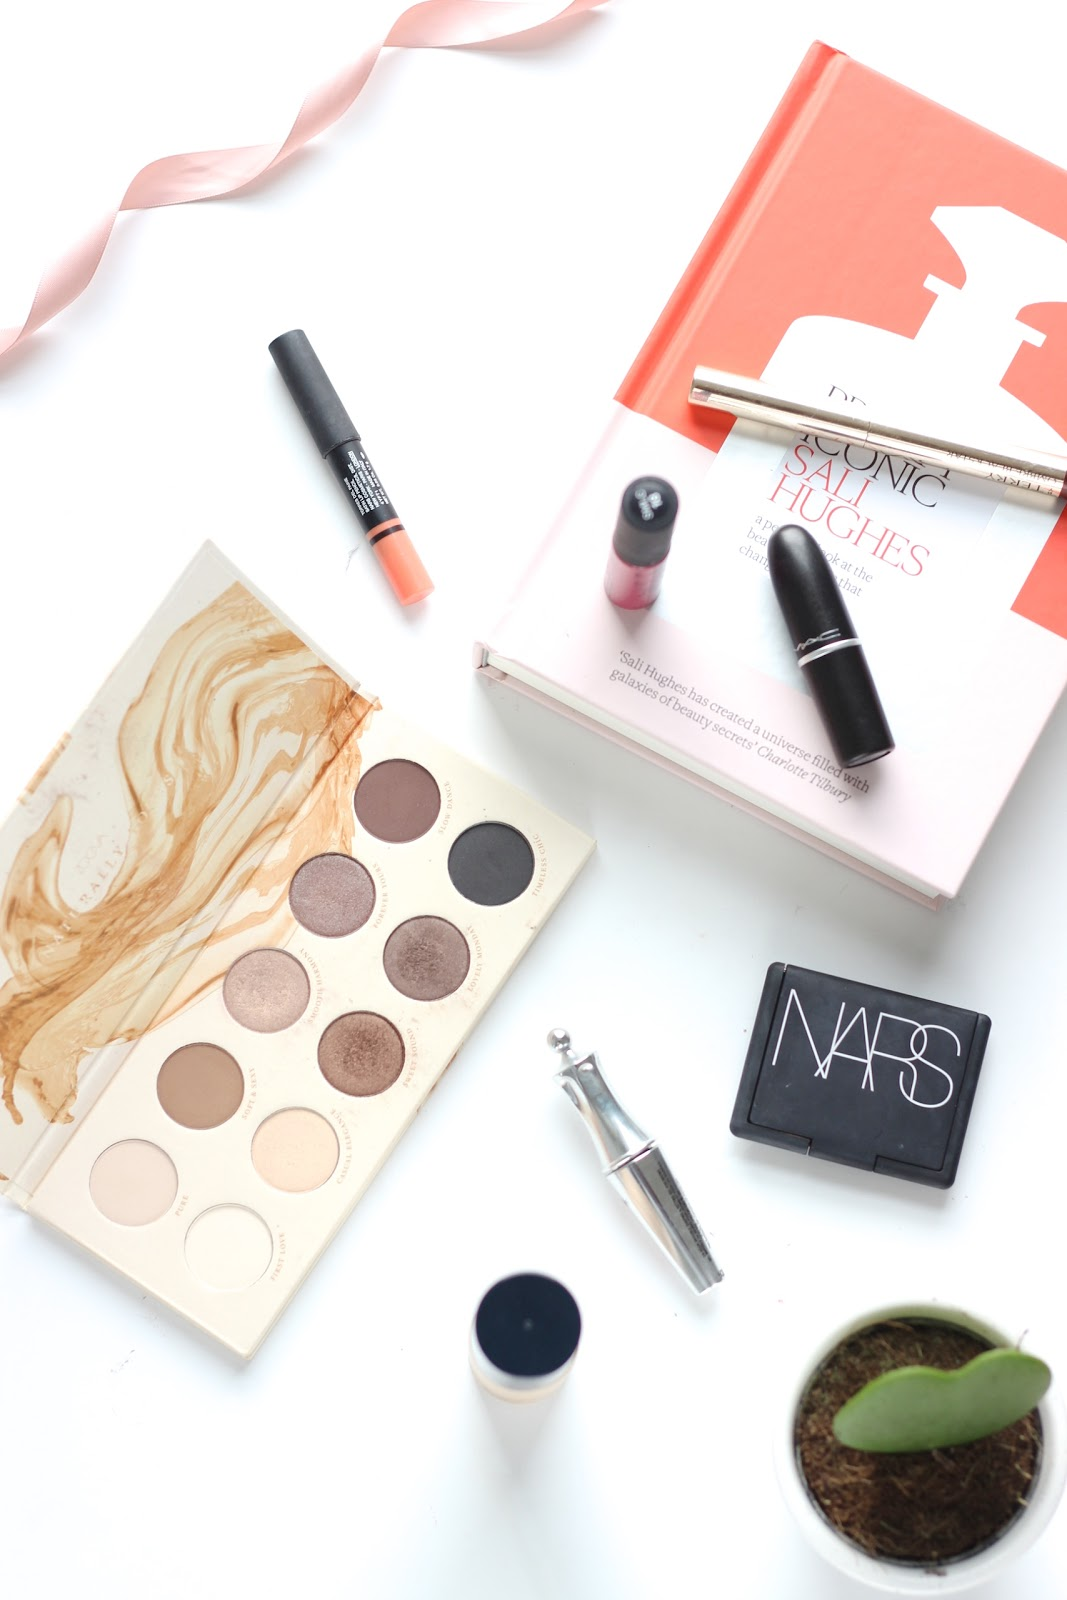 20 Things To Note if You're a Makeup Beginner.